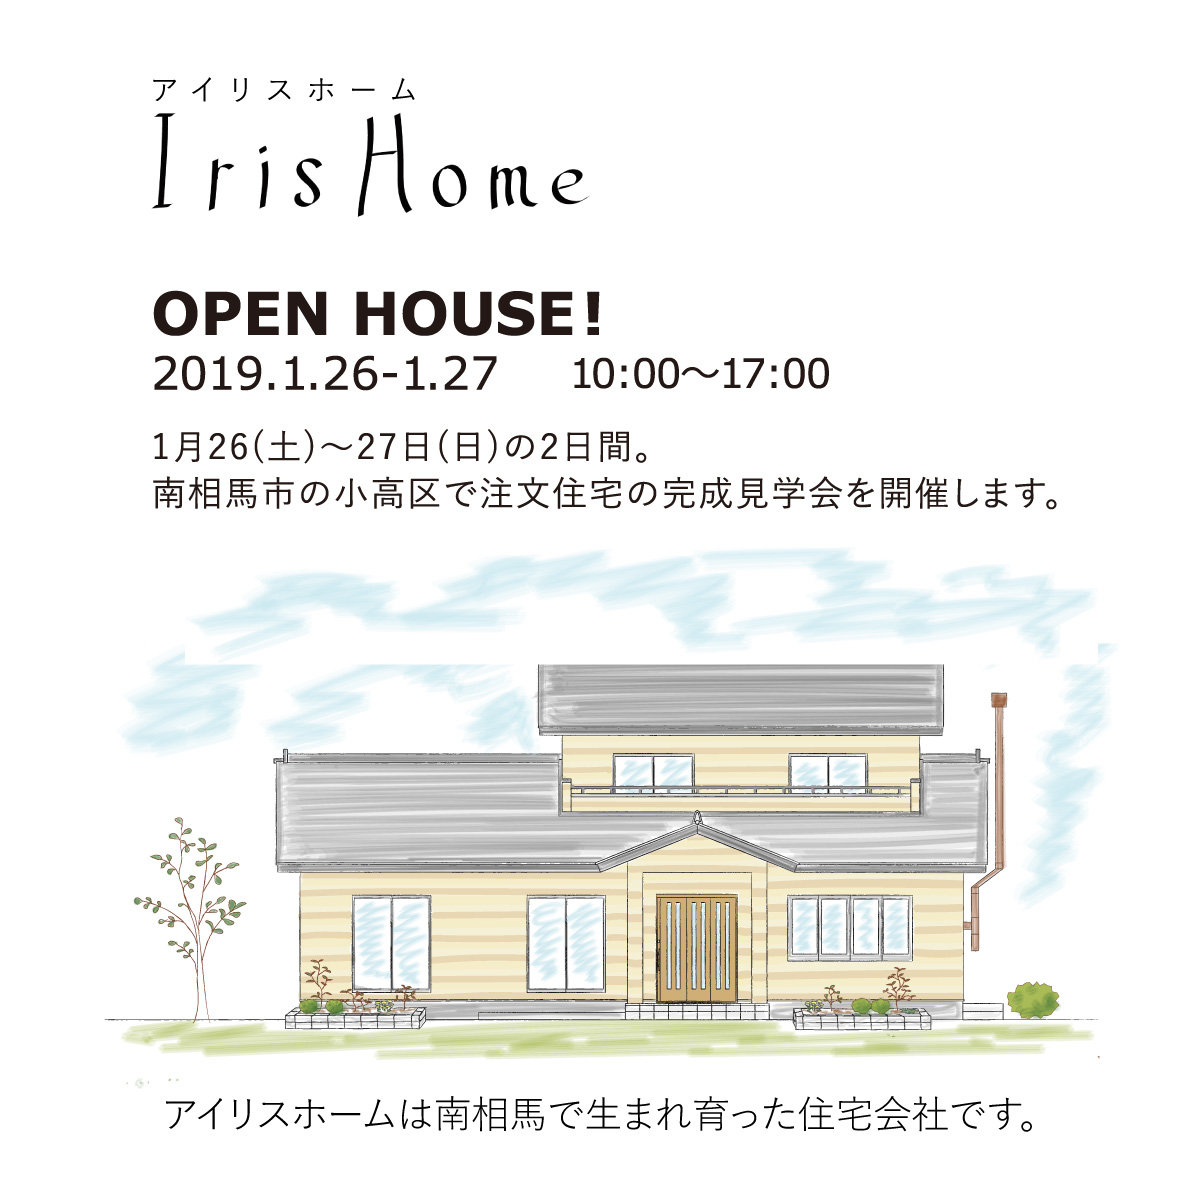 irishome_openhouse_20190126_Google広告_正方形_01